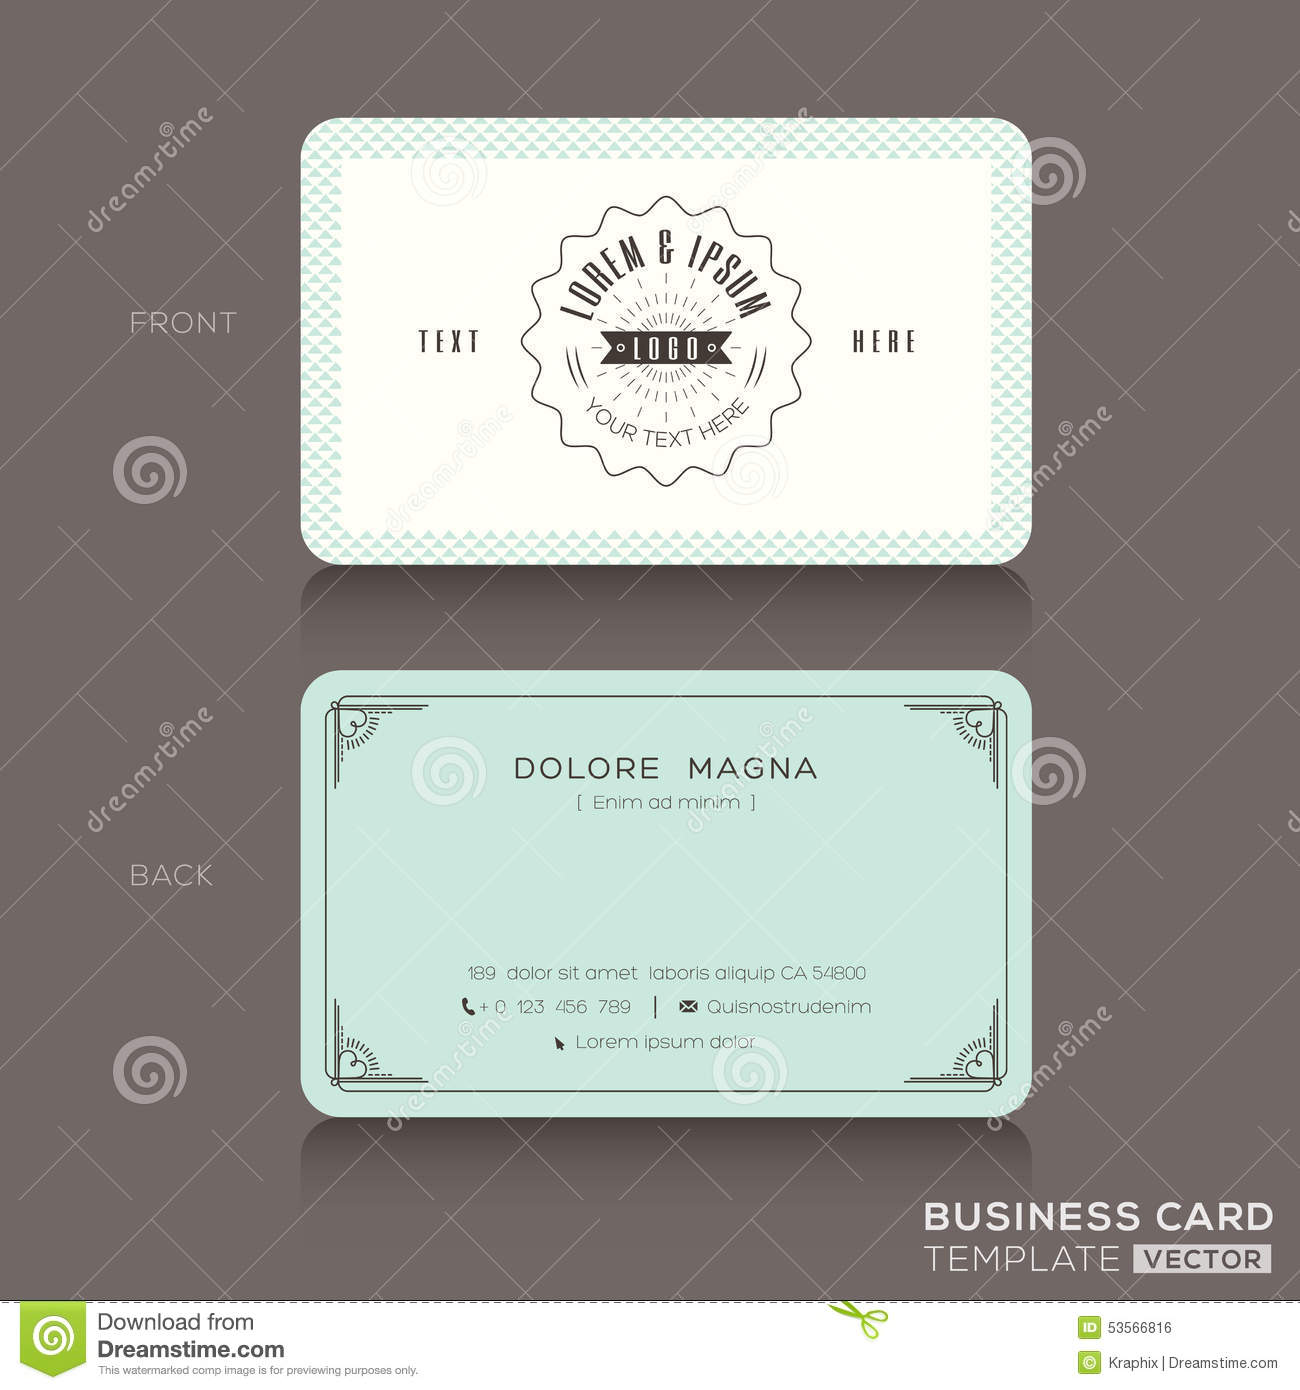 Hipster business cards business card design inspiration for Retro business card template